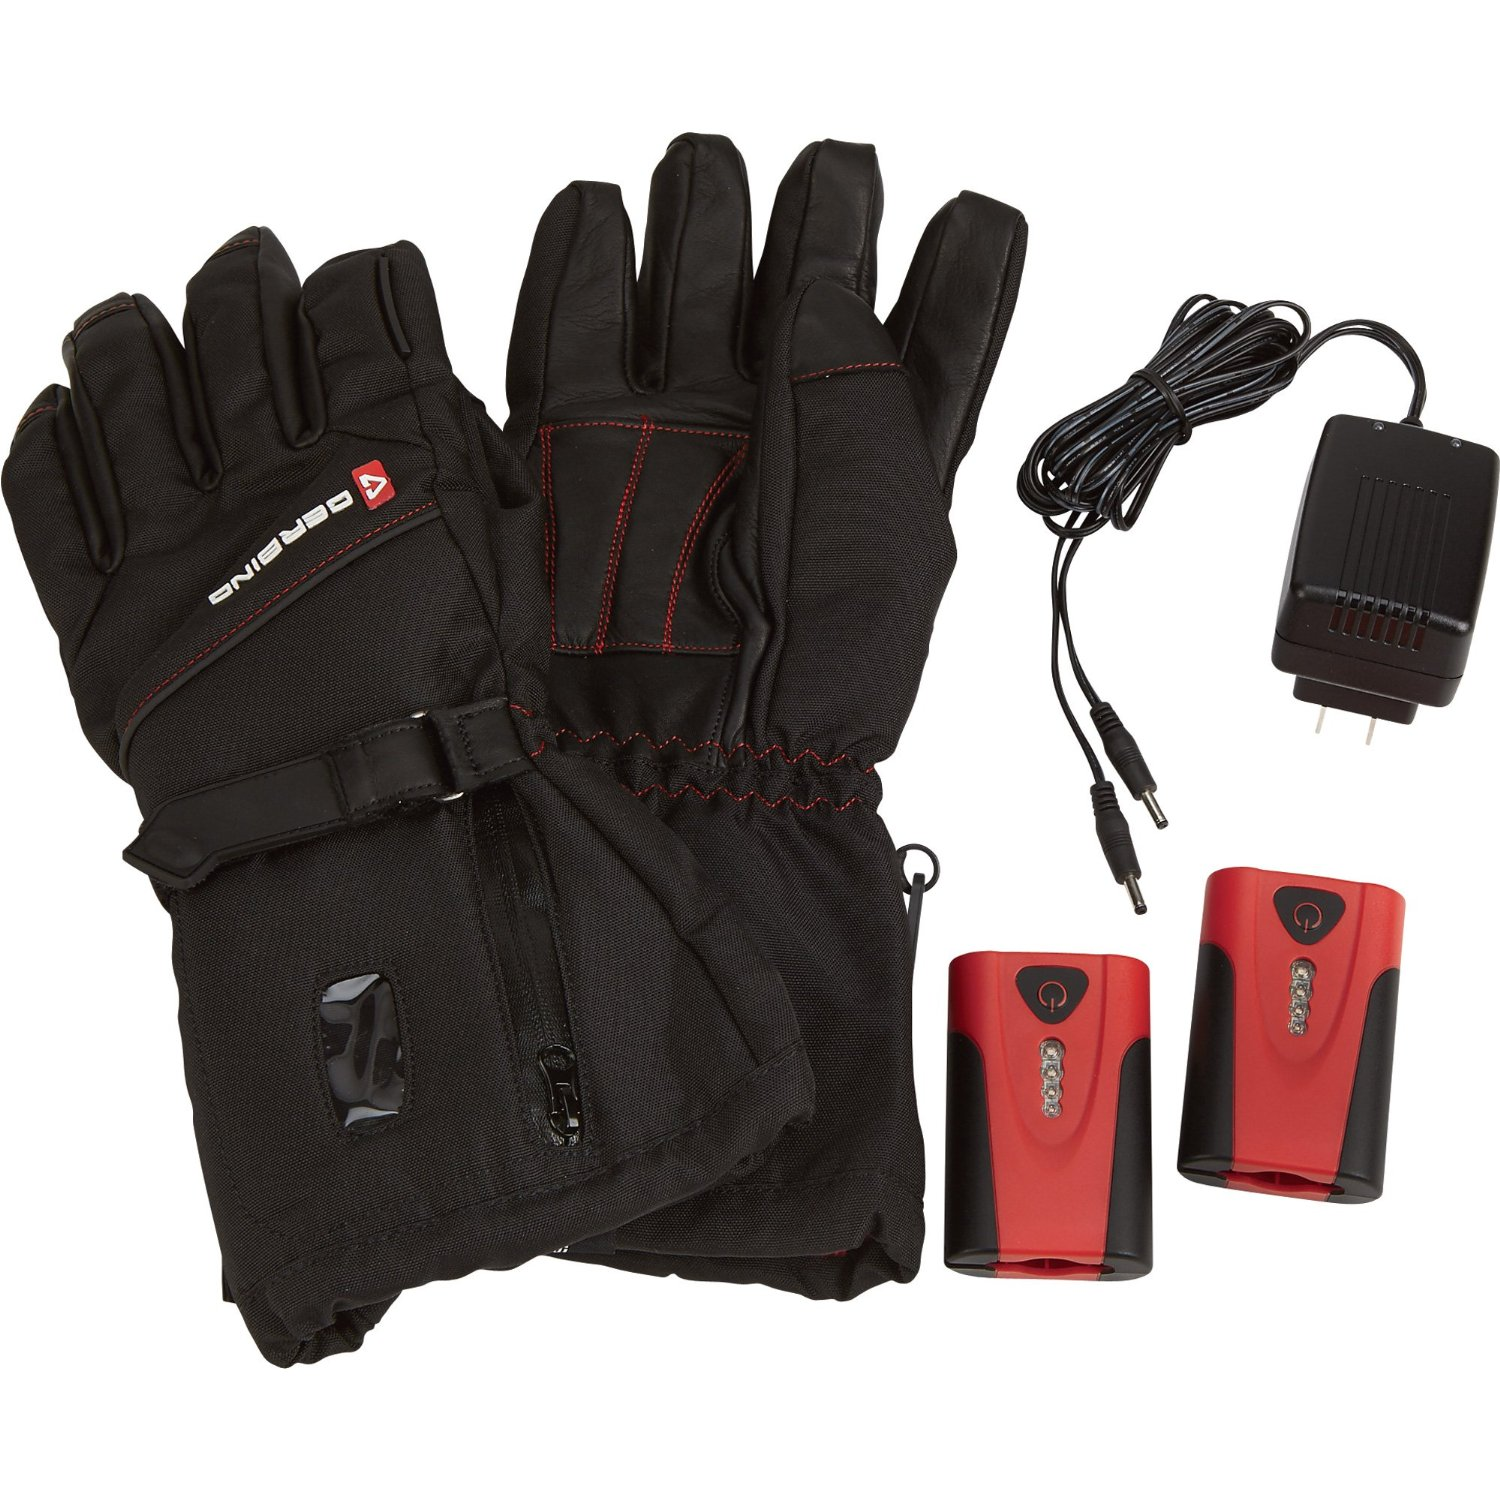 hight resolution of gerbing s s3 heated gloves for women are arguably the best heated gloves in the world